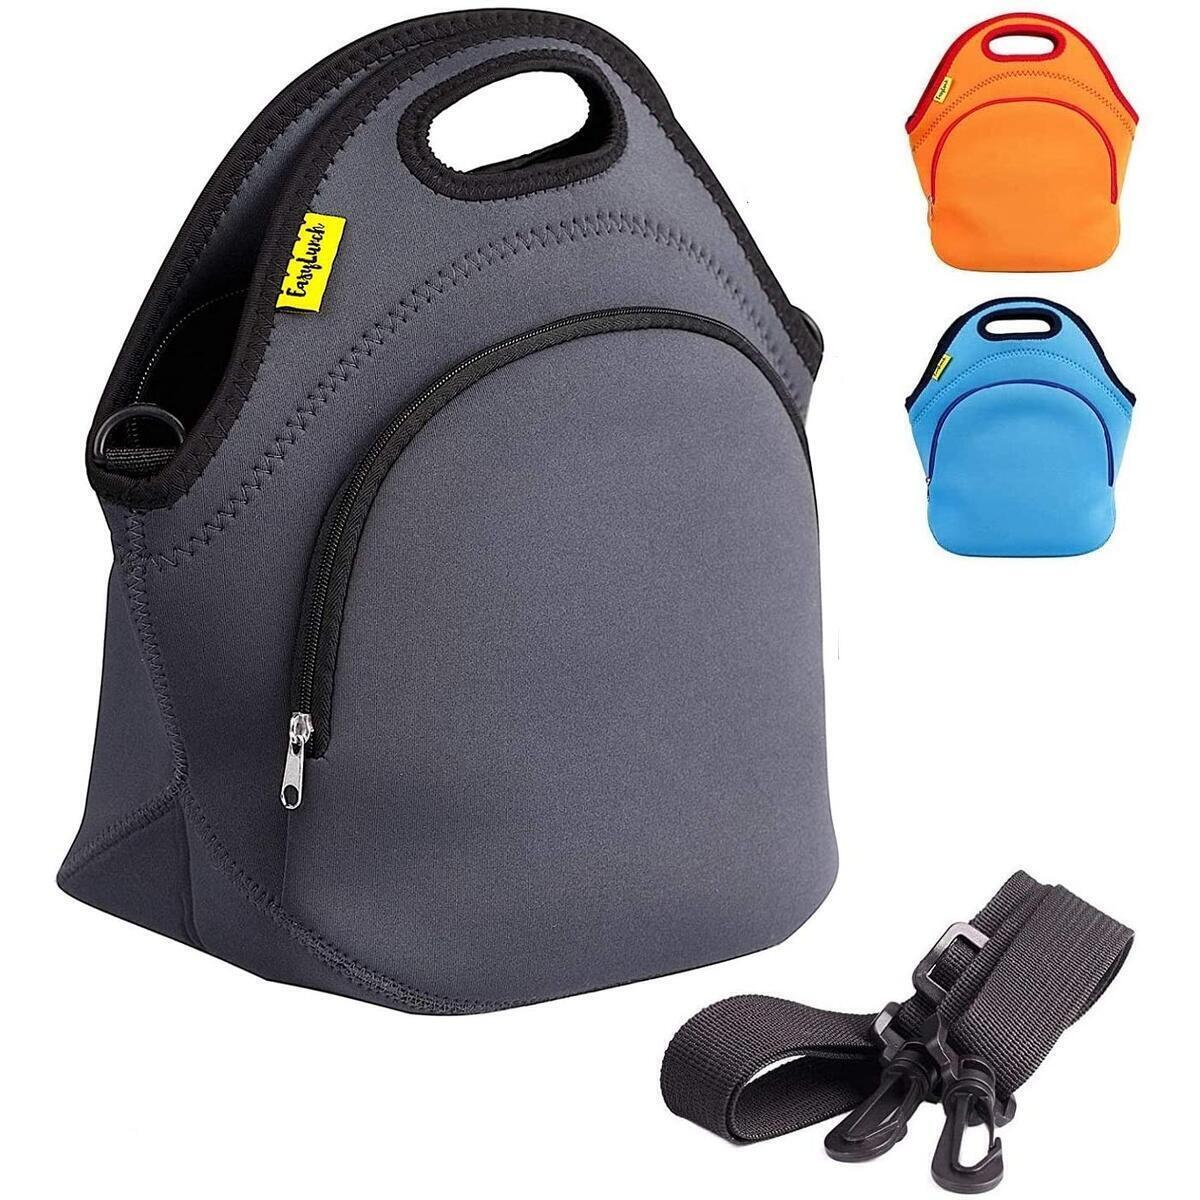 Gray Durable Insulated Neoprene Lunch Bag - For Women & Kids & Men Lunch Box Bag With Detachable Shoulder Strap Outside Zip Pocket Thermal Bags For Cold And Hot Food Reusable Waterproof